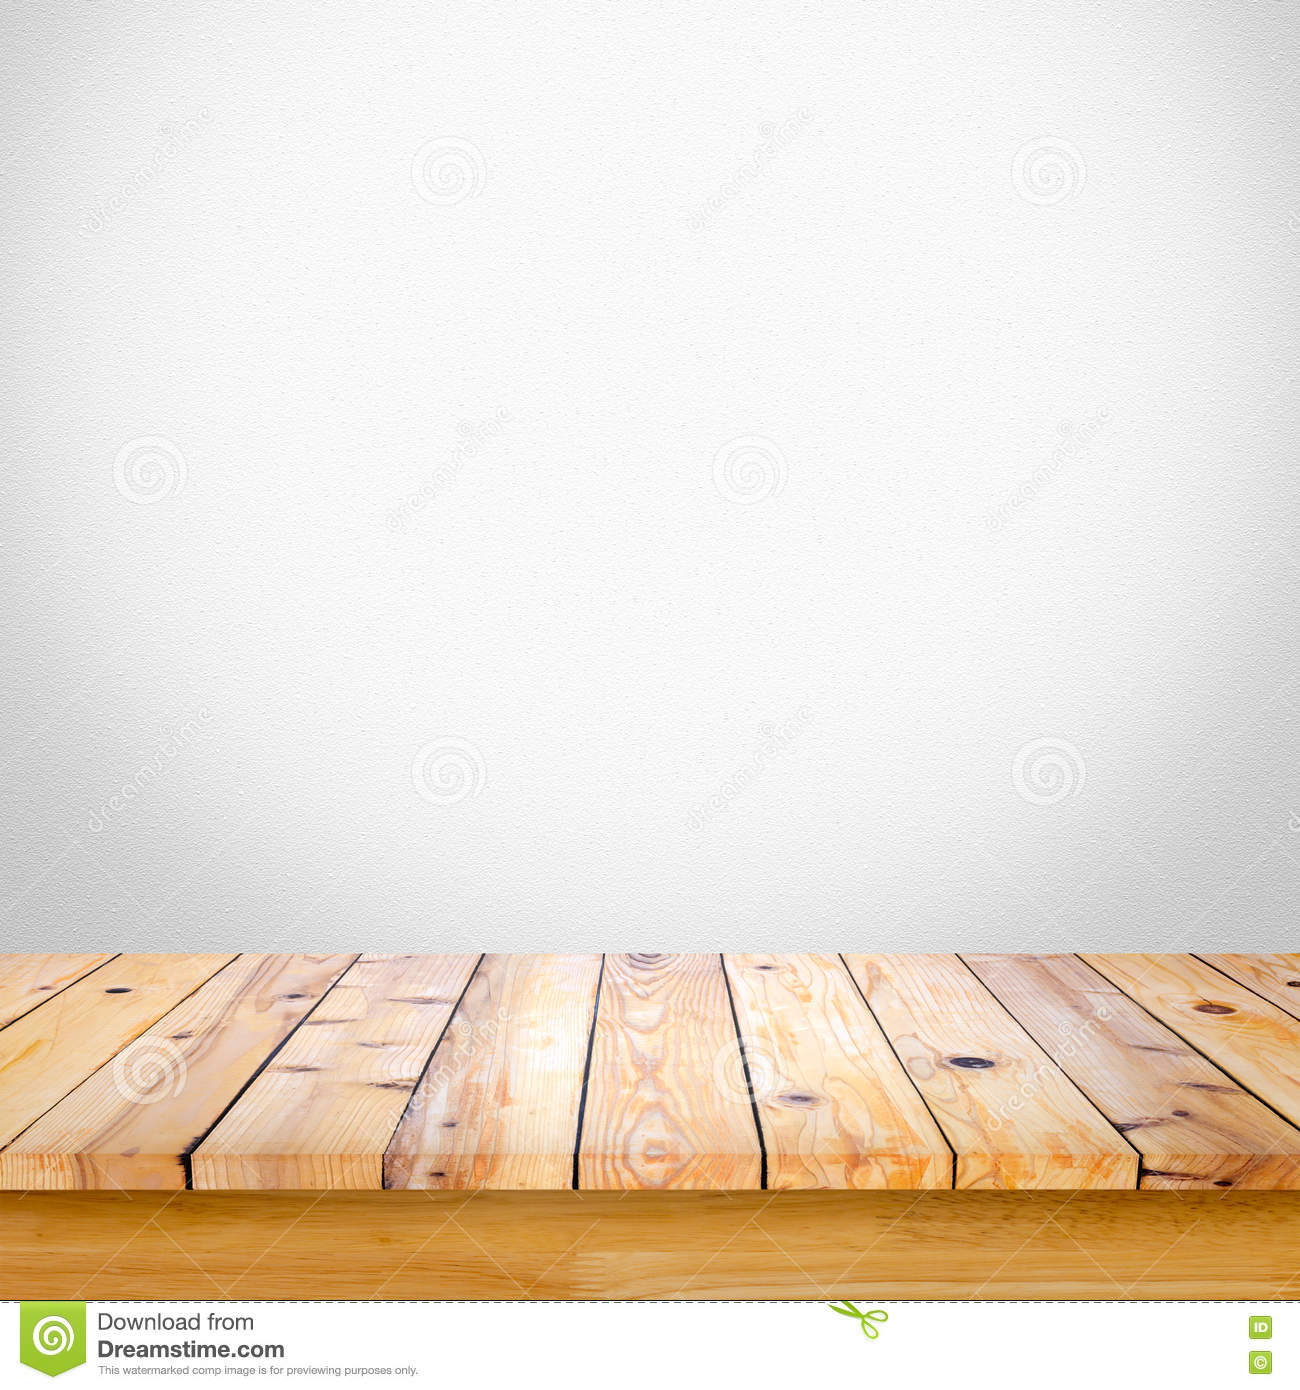 Background image table - Empty Wooden Table With White Gray Gradient Wall Background Stock Photo